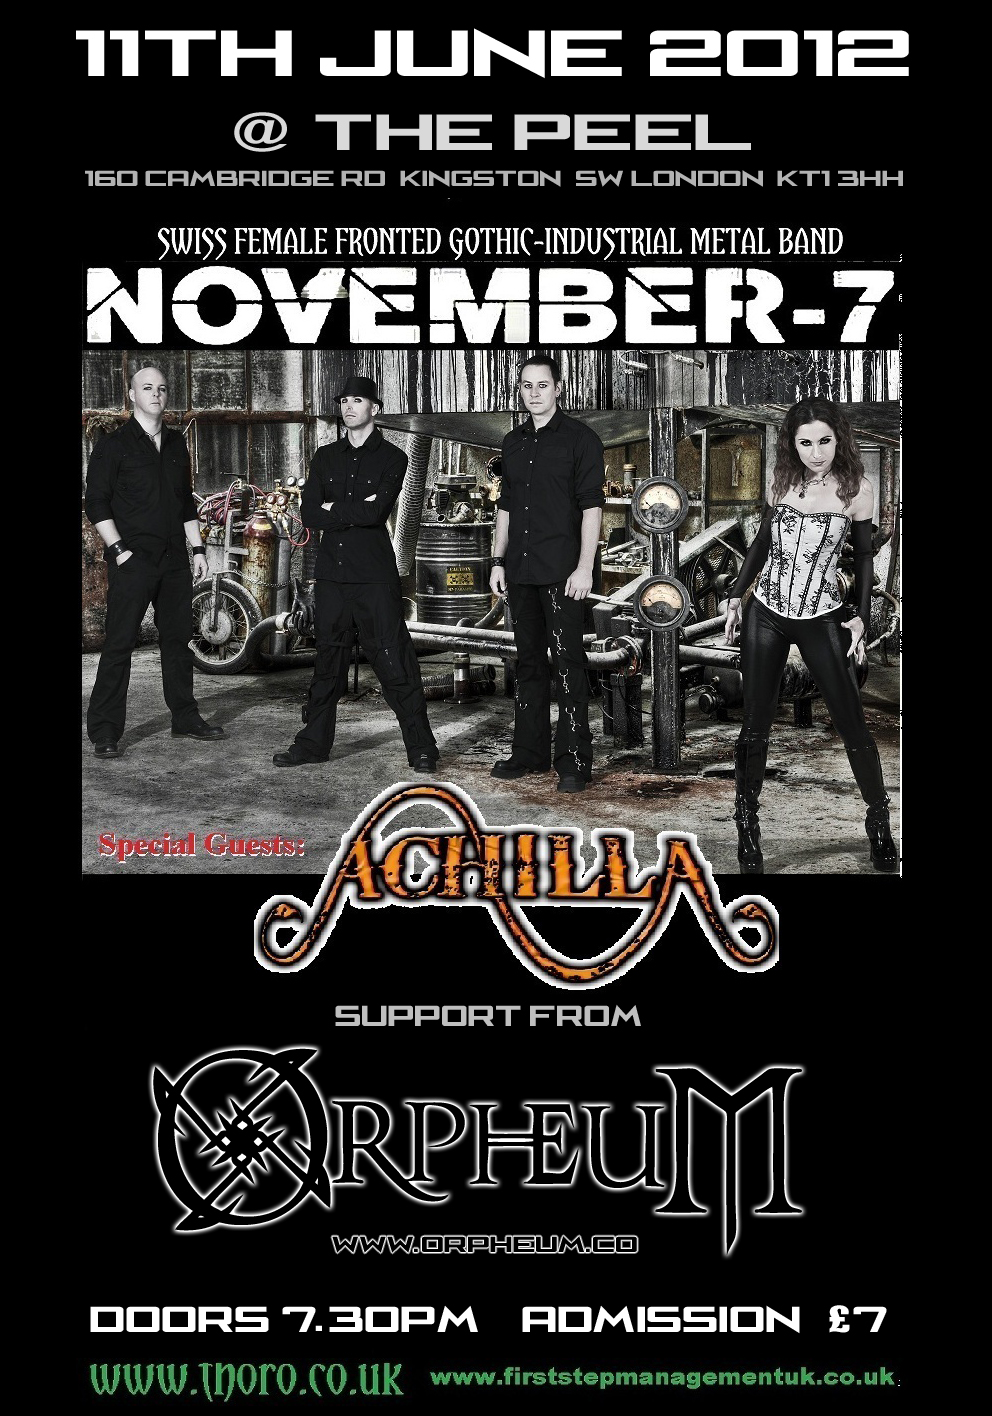 November-7, Achilla, Orpheum @ The Peel